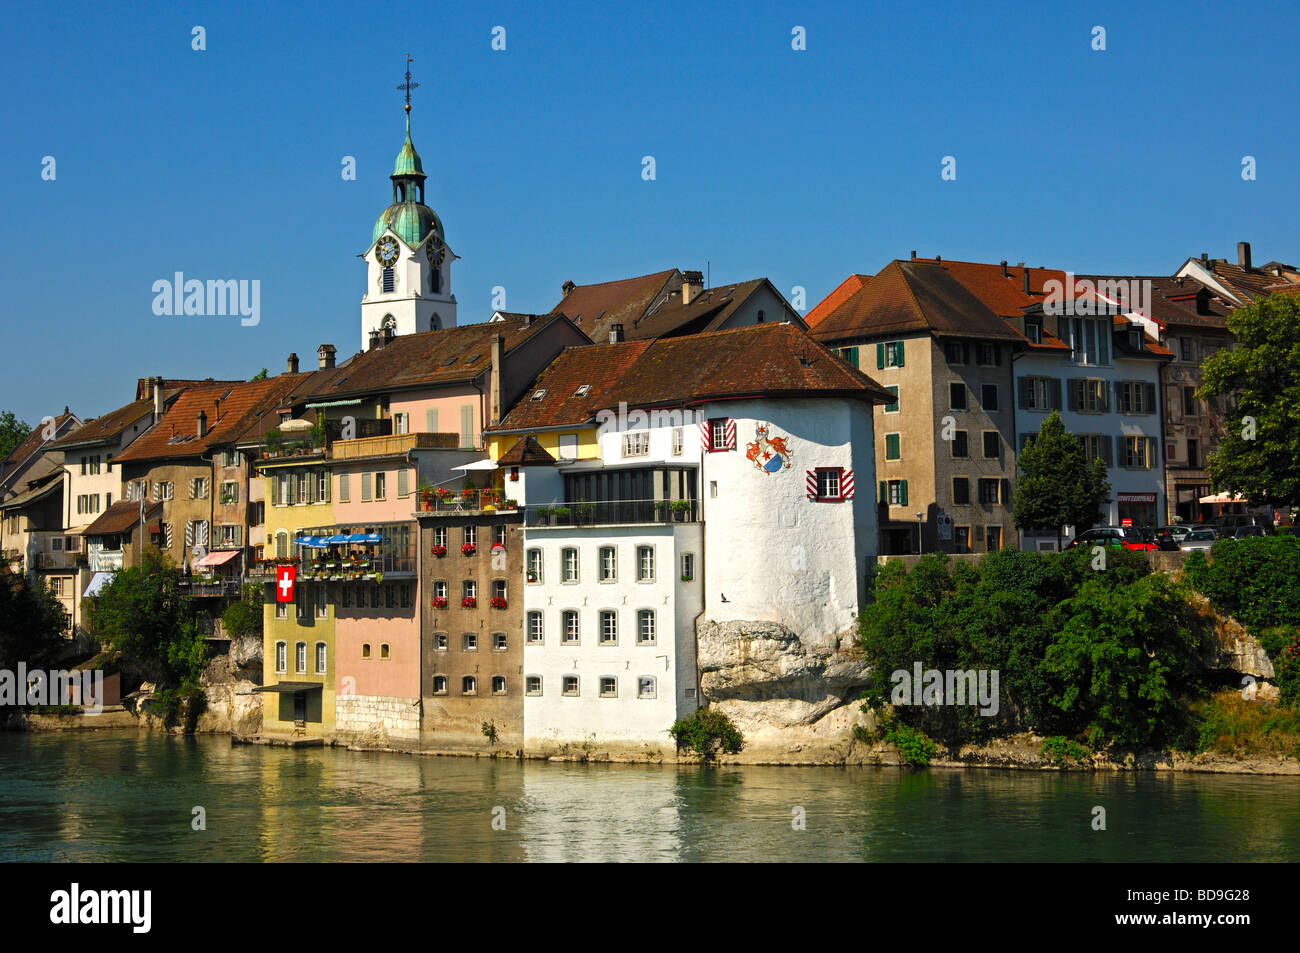 Old town of Olten at the bank of the river Aare, canton of Solothurn, Switzerland - Stock Image